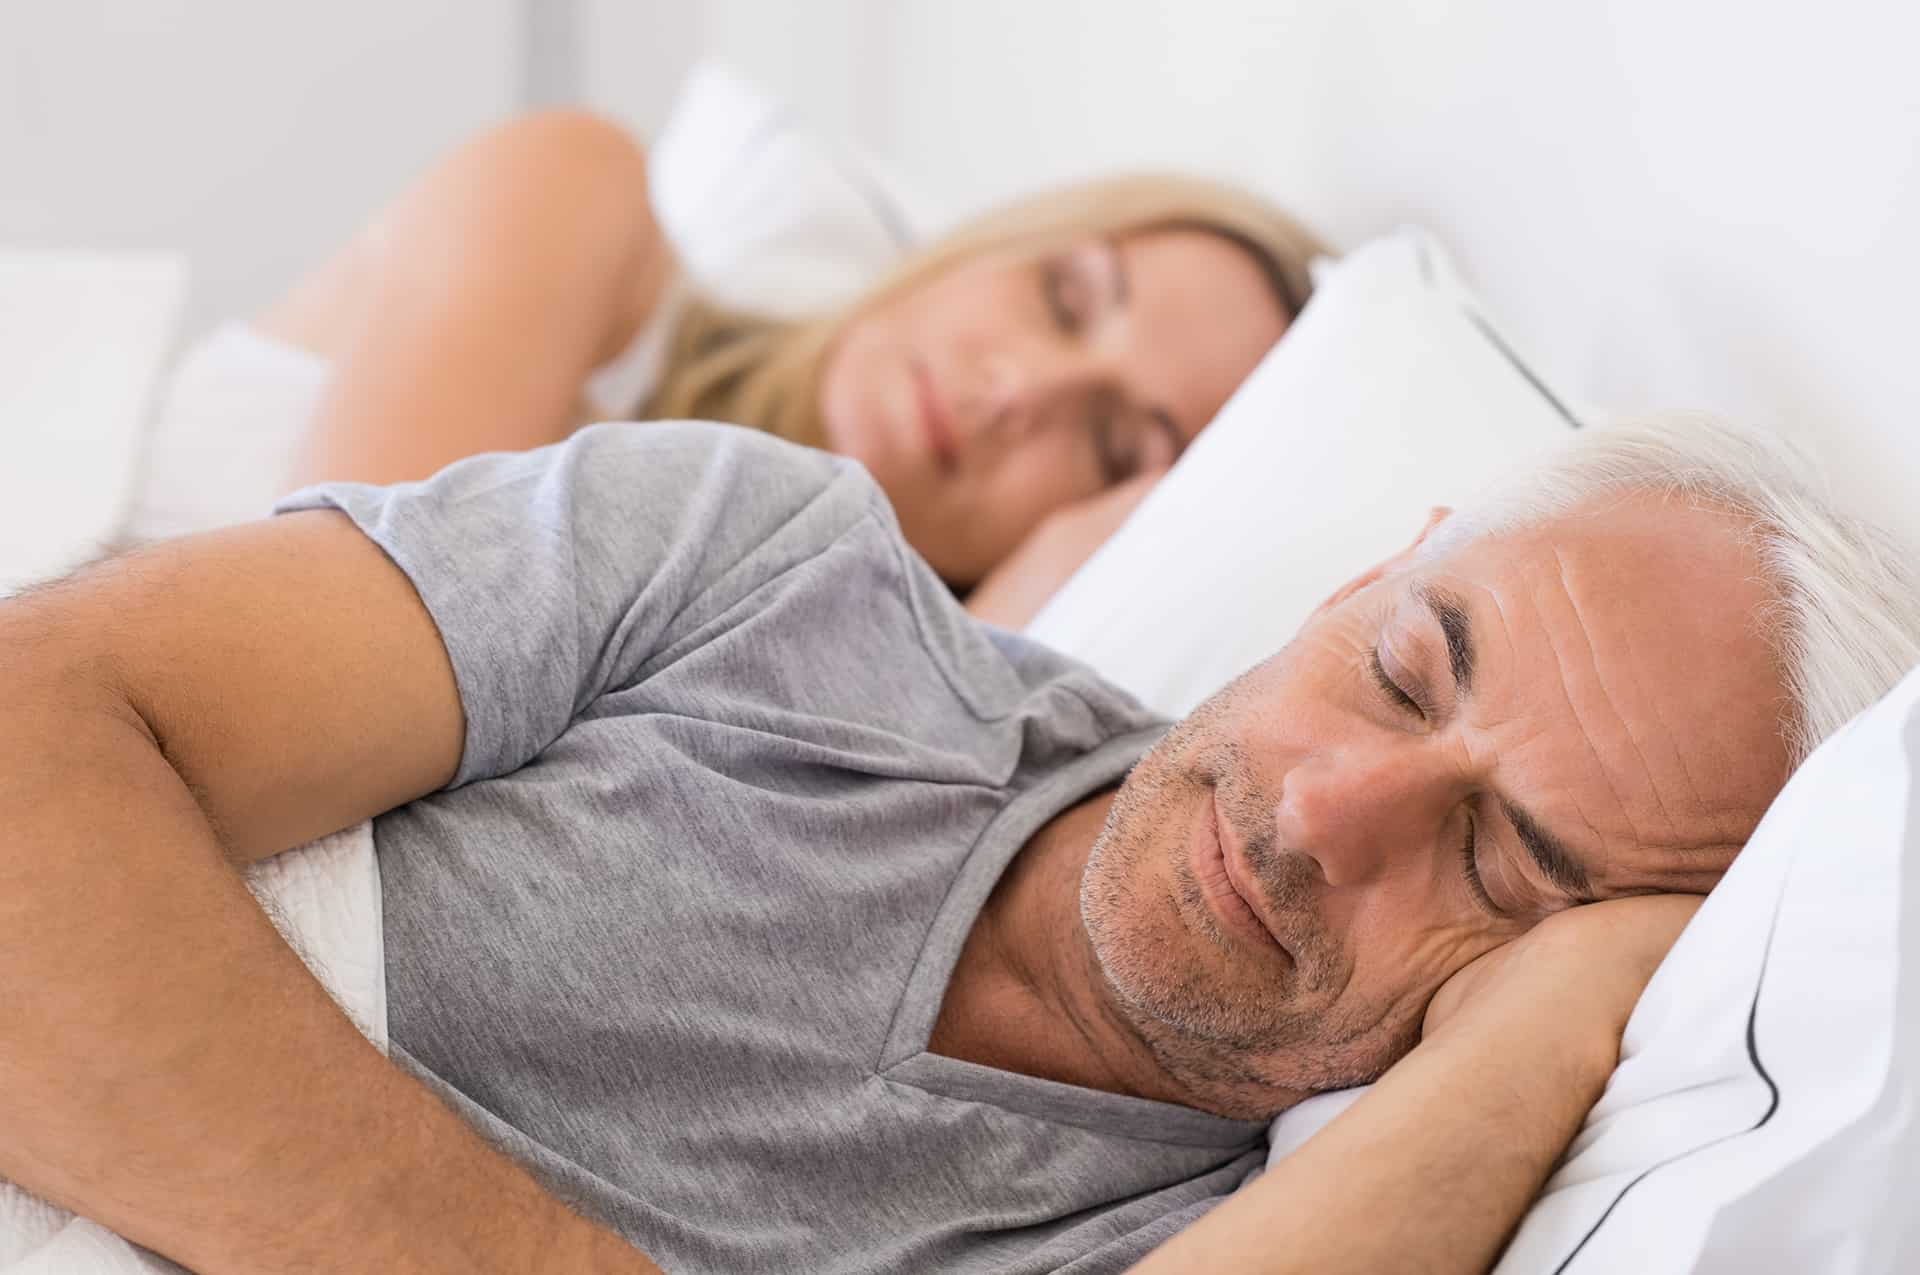 Couple sleeping peacefully in bed